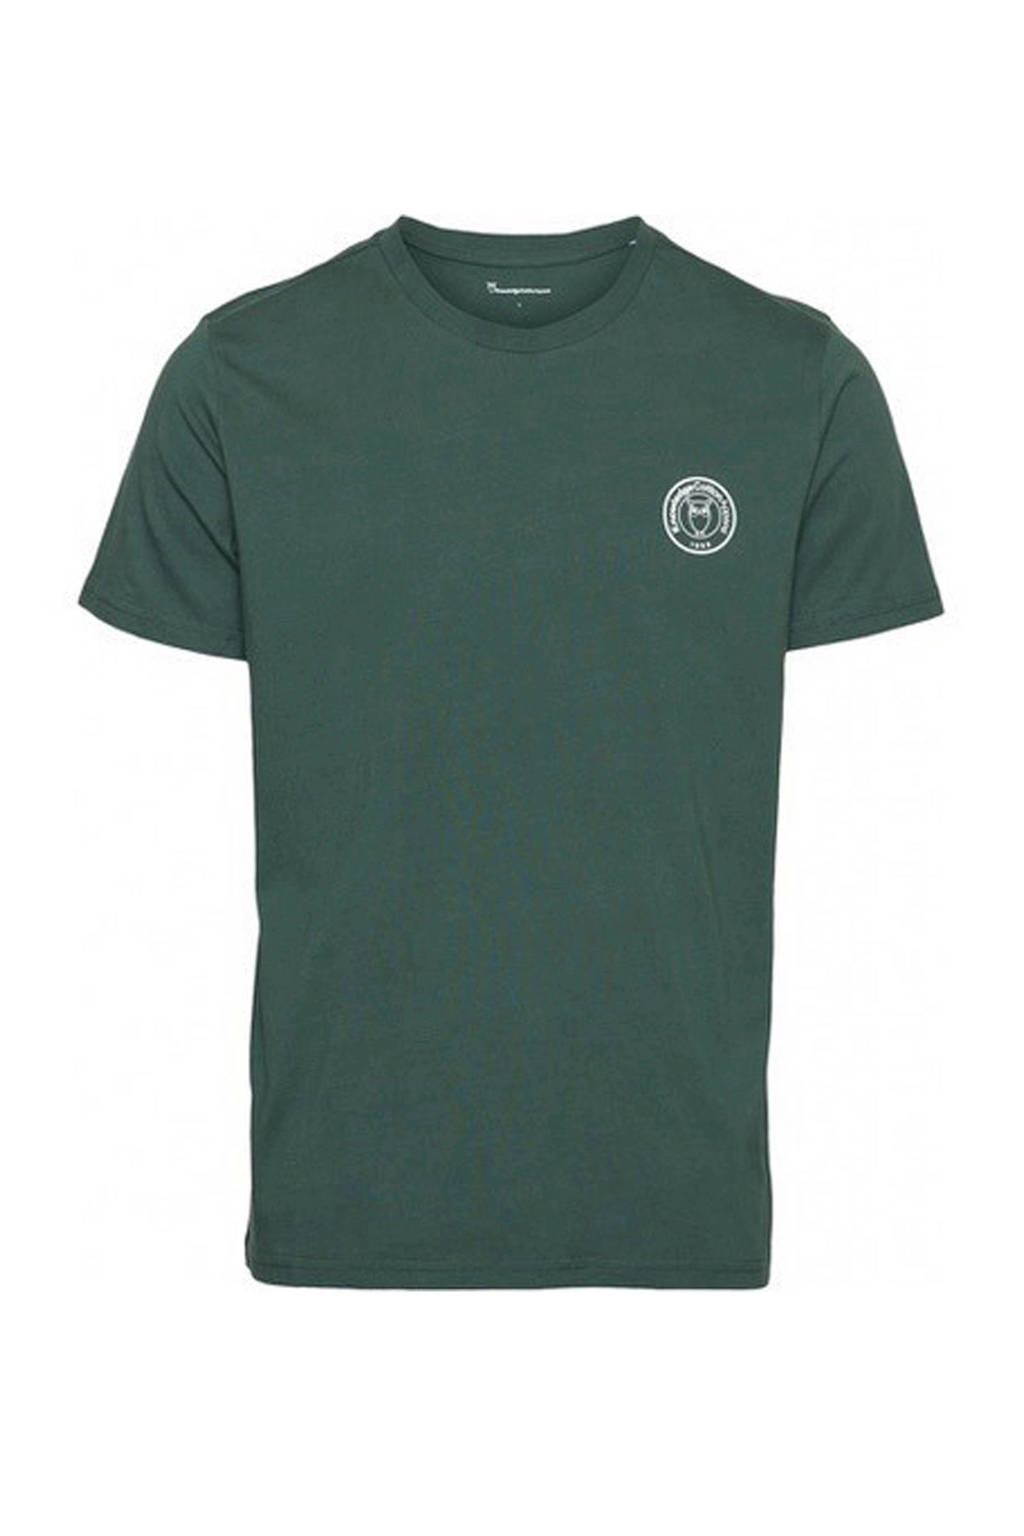 Knowledge Cotton Apparel T-shirt met printopdruk groen, Groen